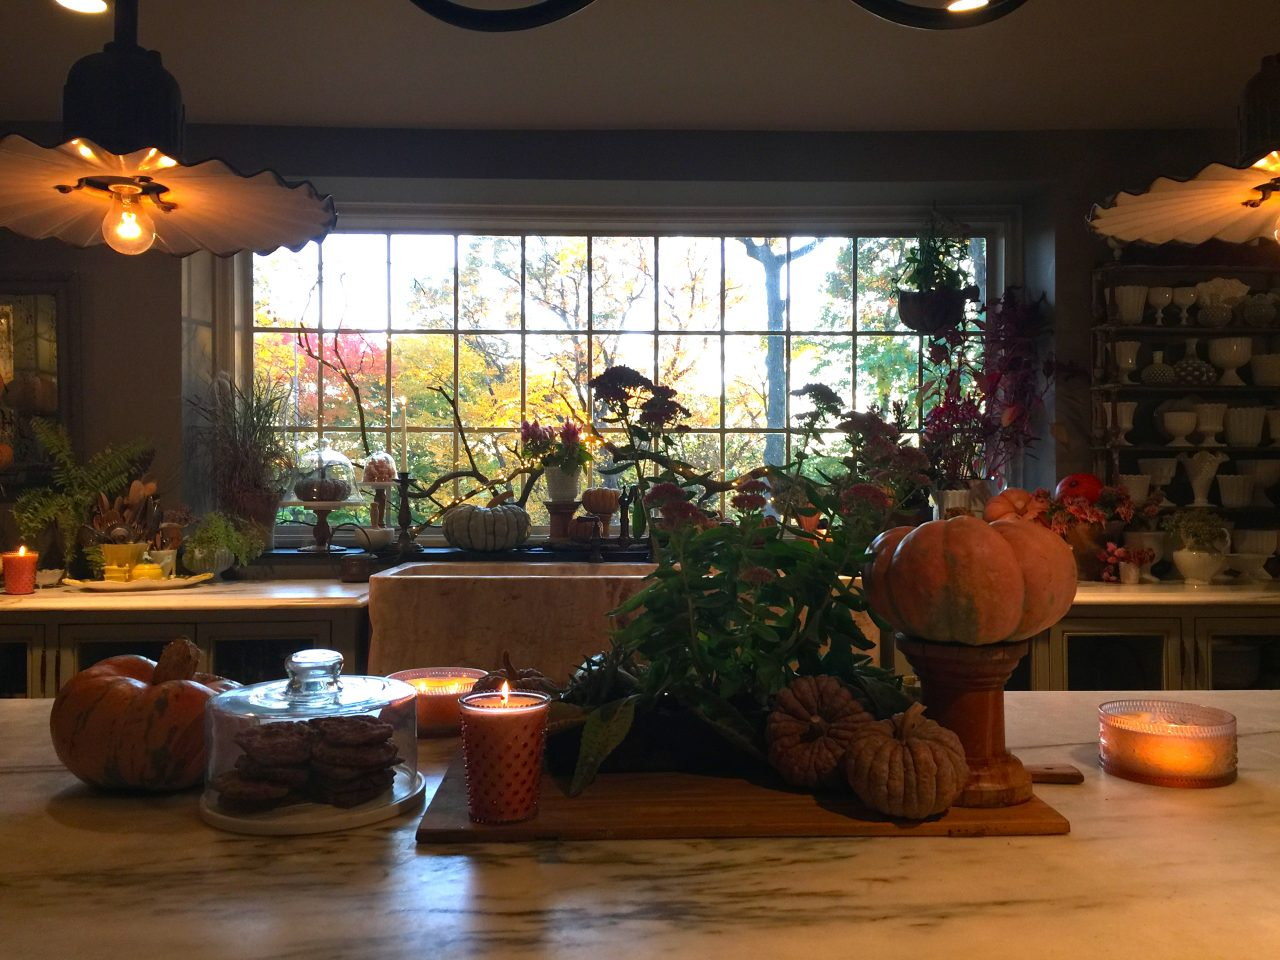 Autumn U2013 Tallulah U0026 Bird Design Inspiration October 28, 2015  Uncategorizedautumn, Best Chestnut Hill Interior Designers, Best Philadelphia  Interior ...